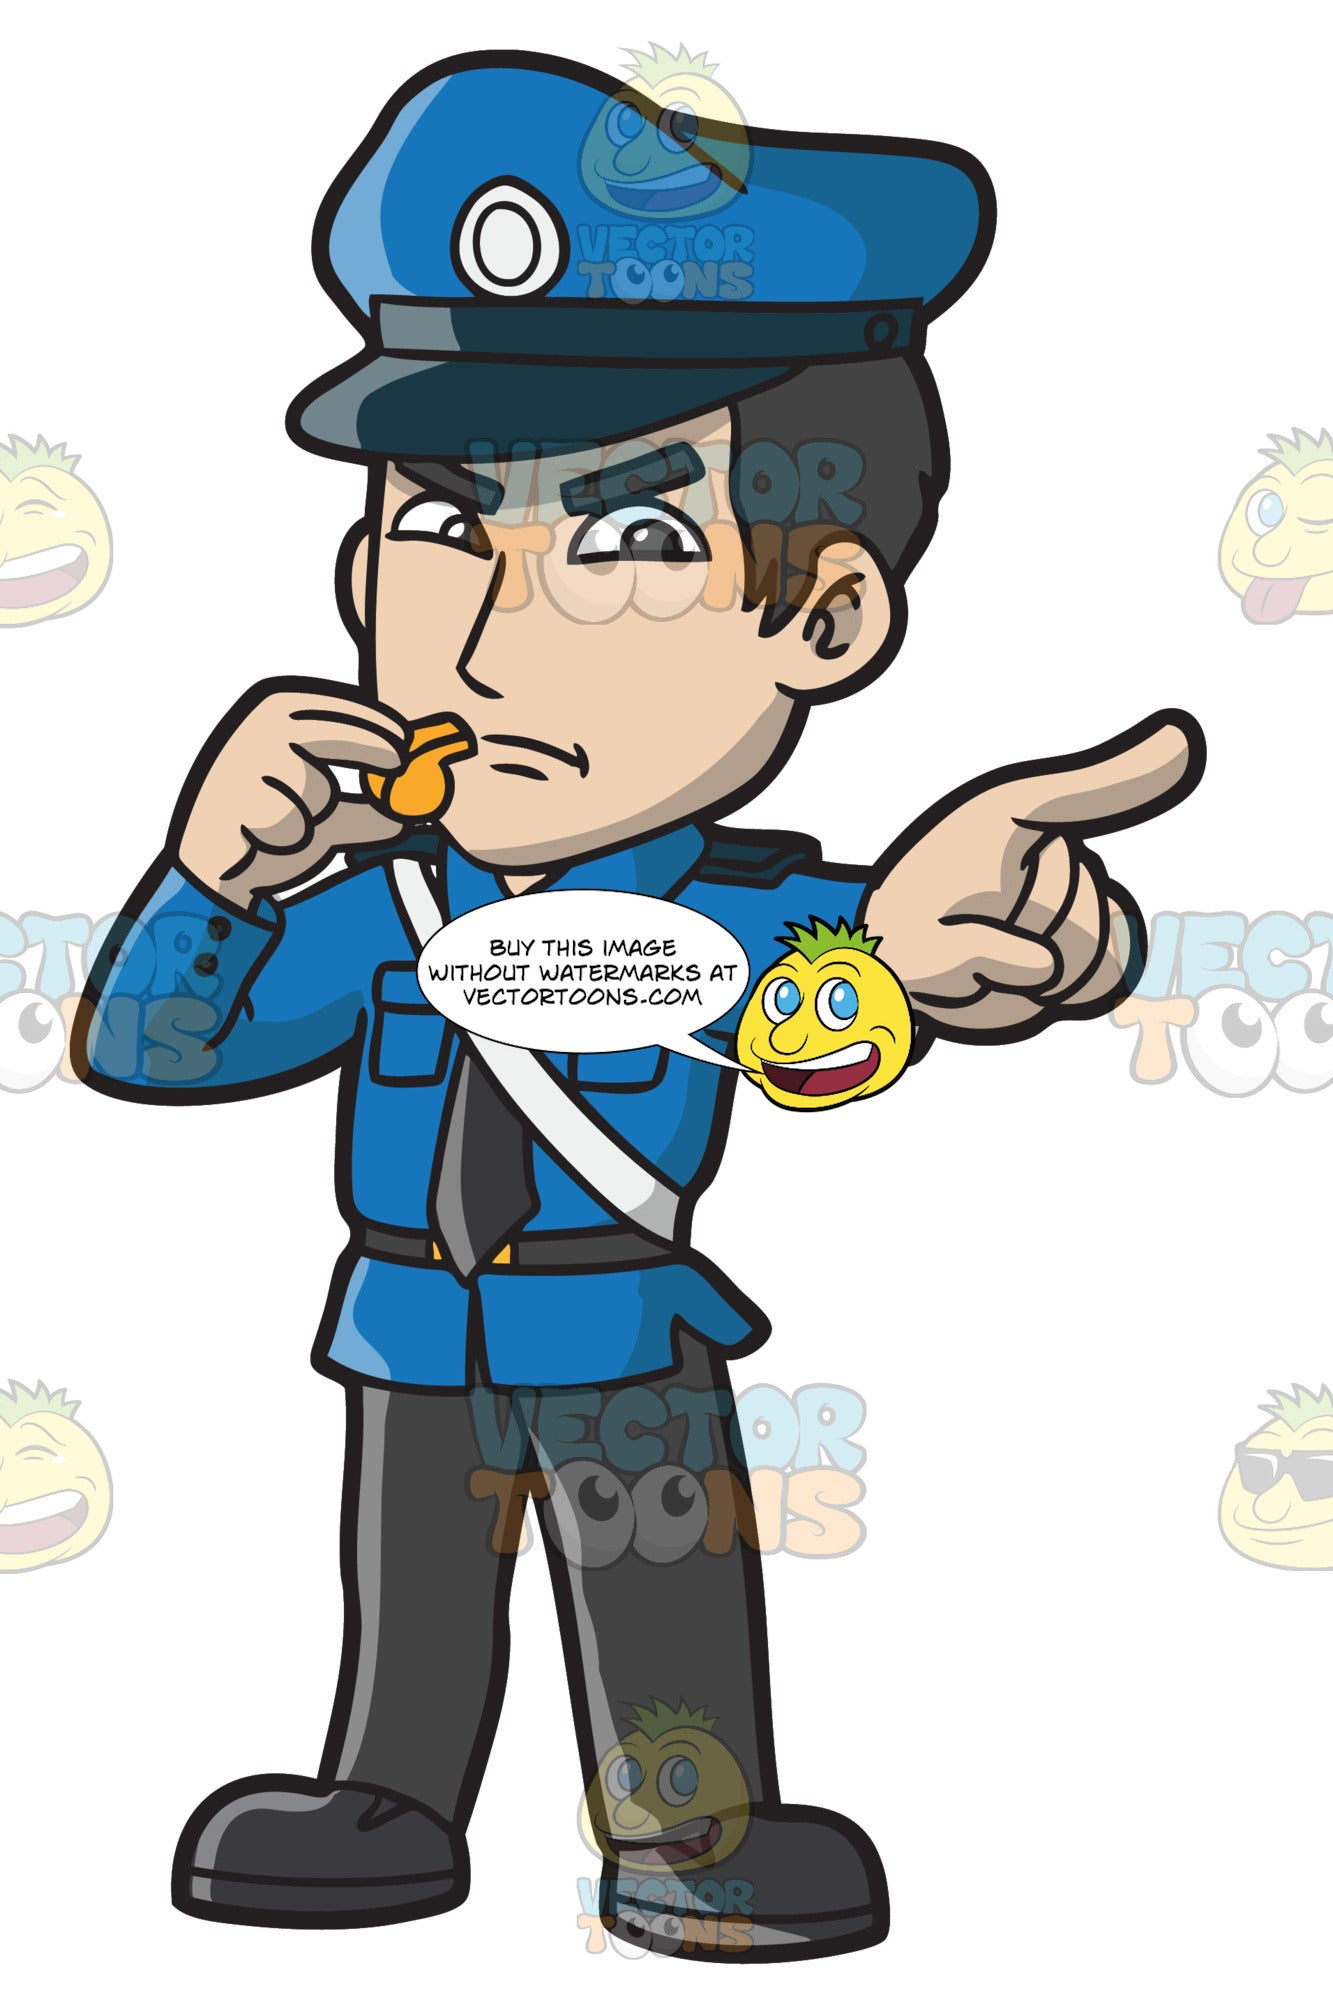 An Angry Police Officer With A Whistle